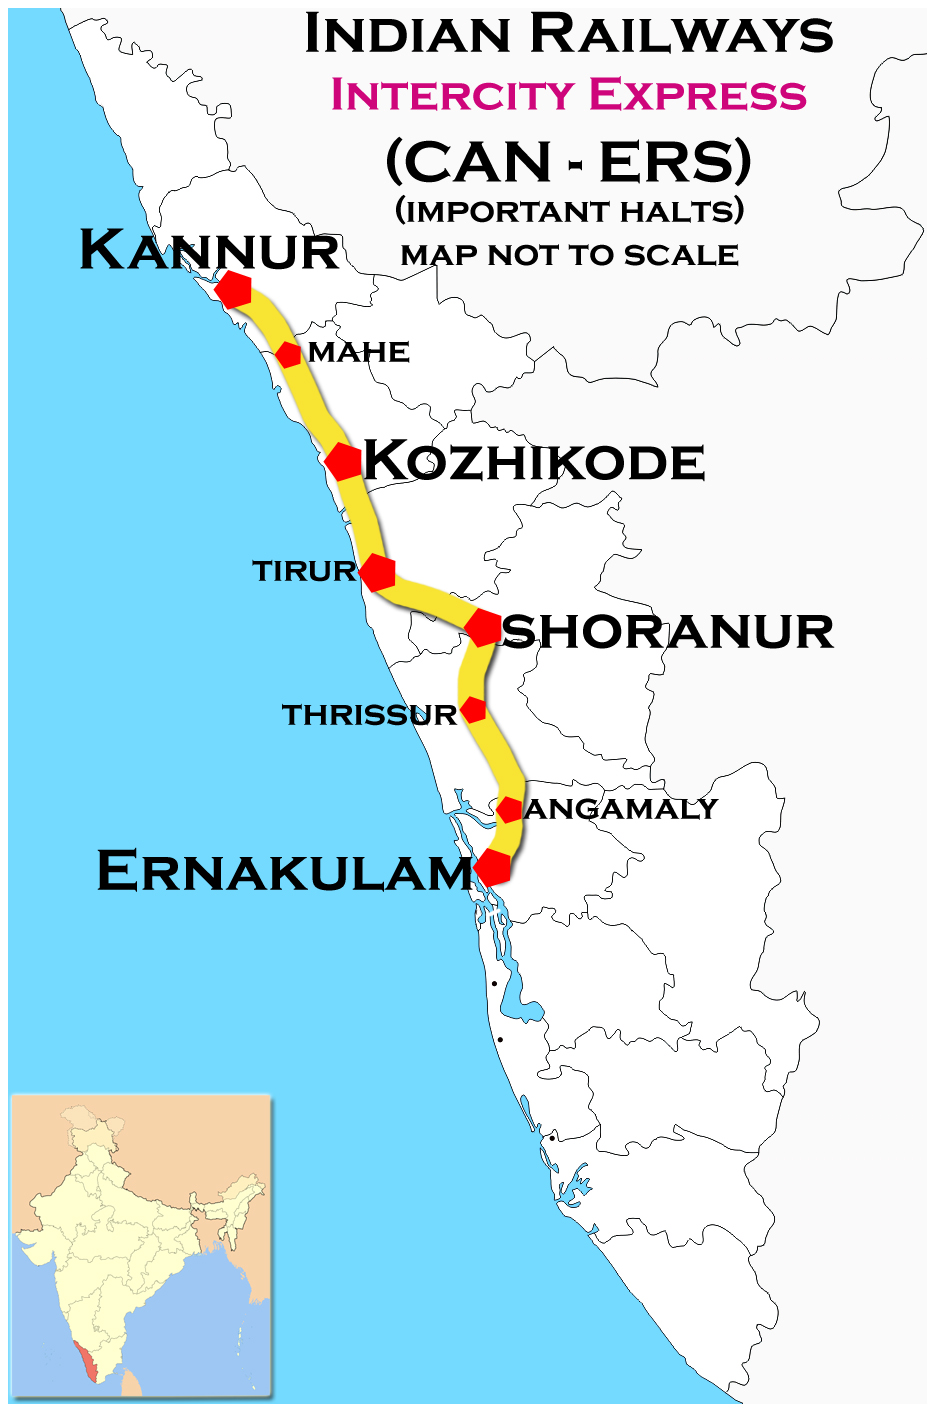 FileKannur Ernakulam Intercity Express Route Mapjpg - Kannur map